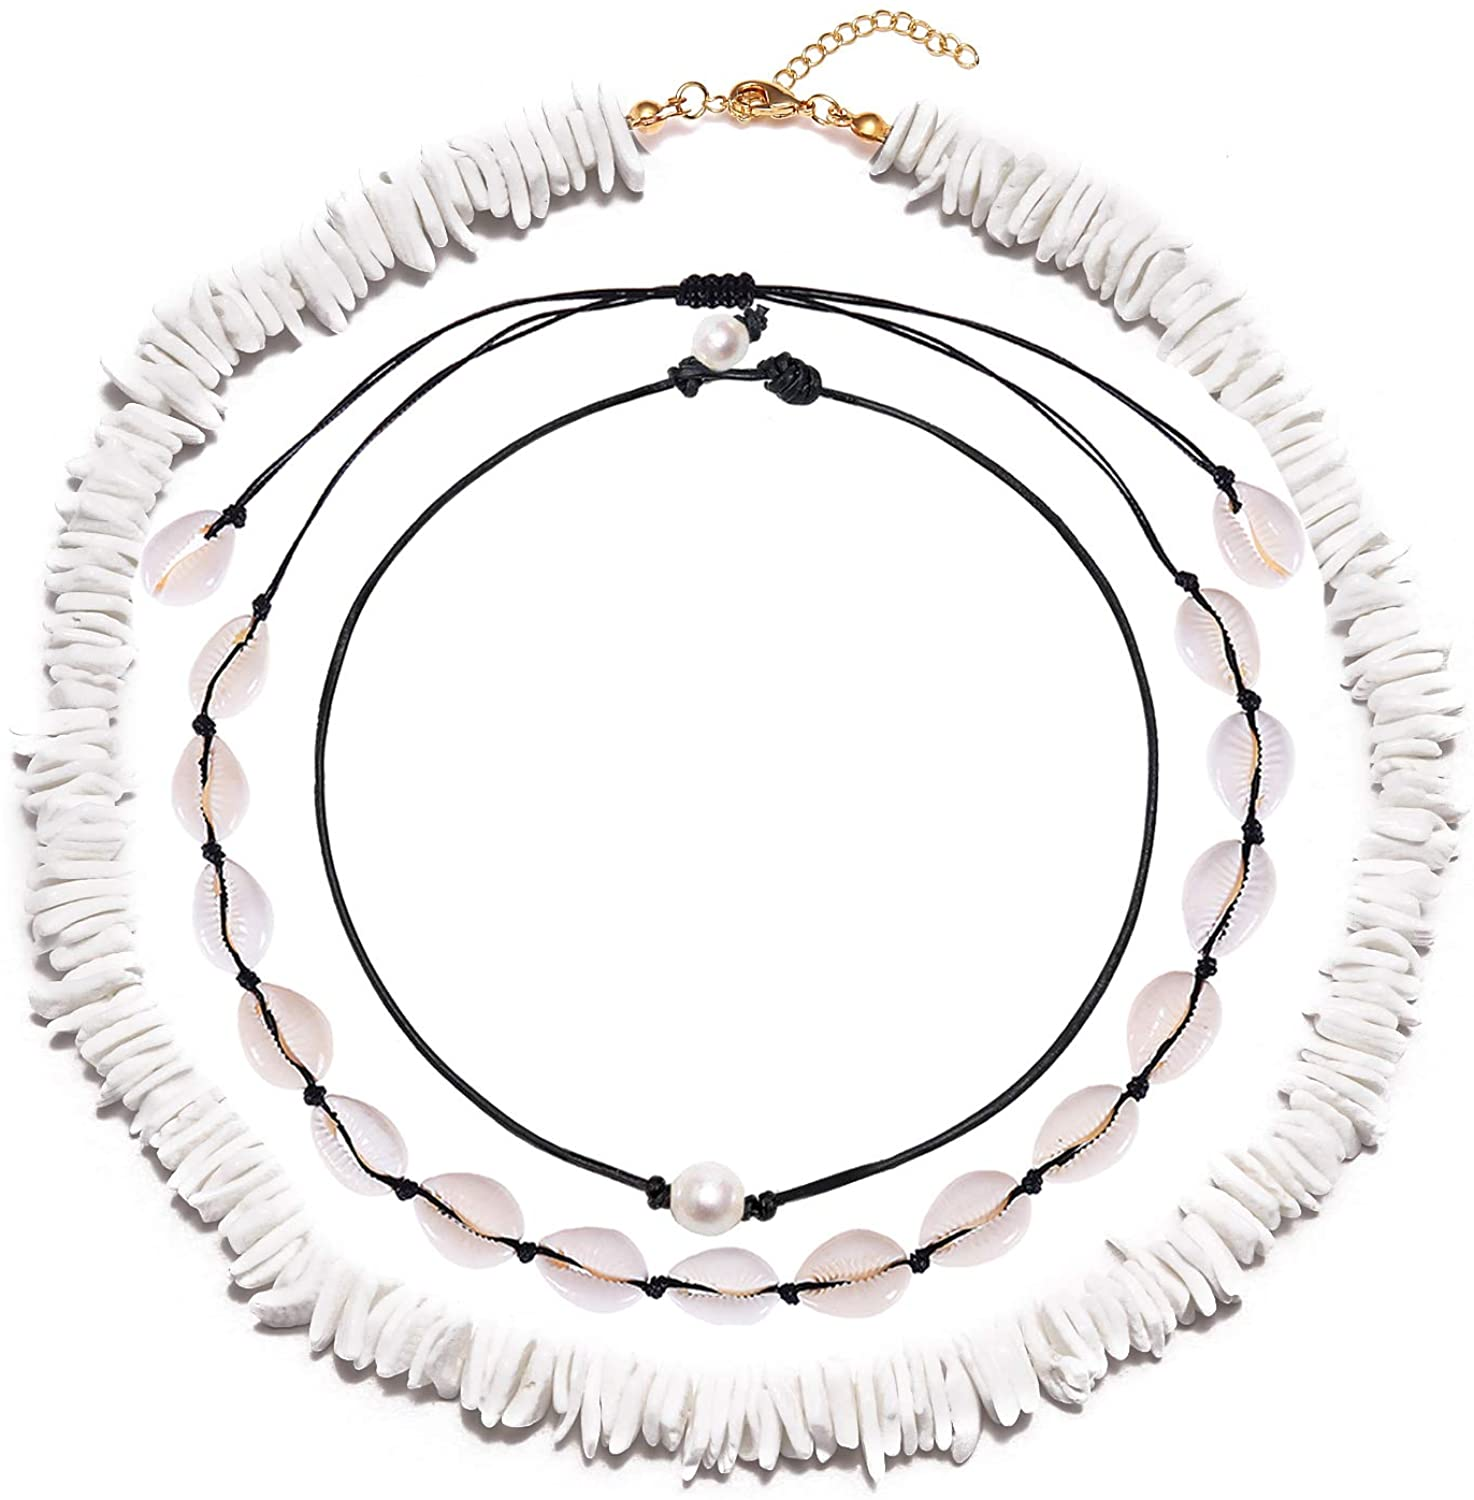 Highven VSCO Girl Shell Necklace 3Pcs Puka Shell Necklace for Women Pearl Choker Necklace Cowrie Shell Anklet Bracelet Beach Jewelry Set (style 1)